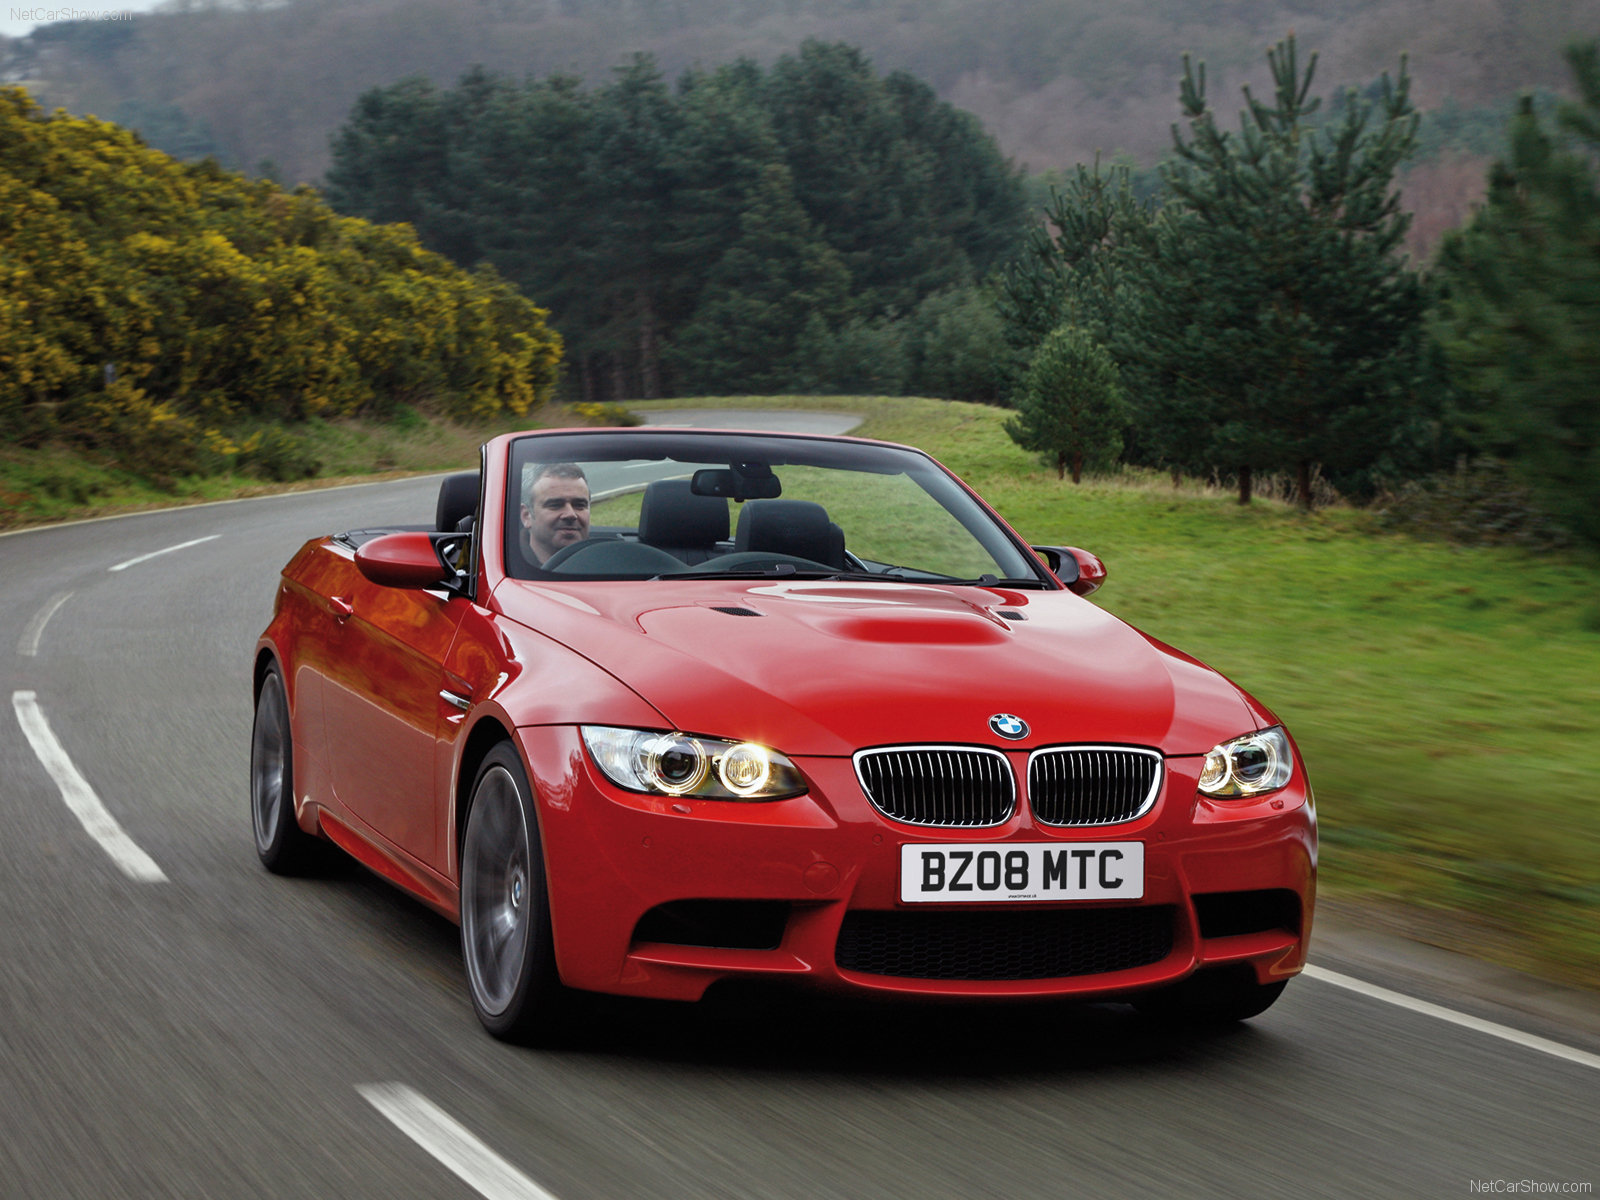 http://3.bp.blogspot.com/-9lc_u-SeBQo/TVYETyWwpJI/AAAAAAAAALM/n4fCaU6AkhQ/s1600/BMW-M3_Convertible_UK_Version-2009-wallpaper.jpg